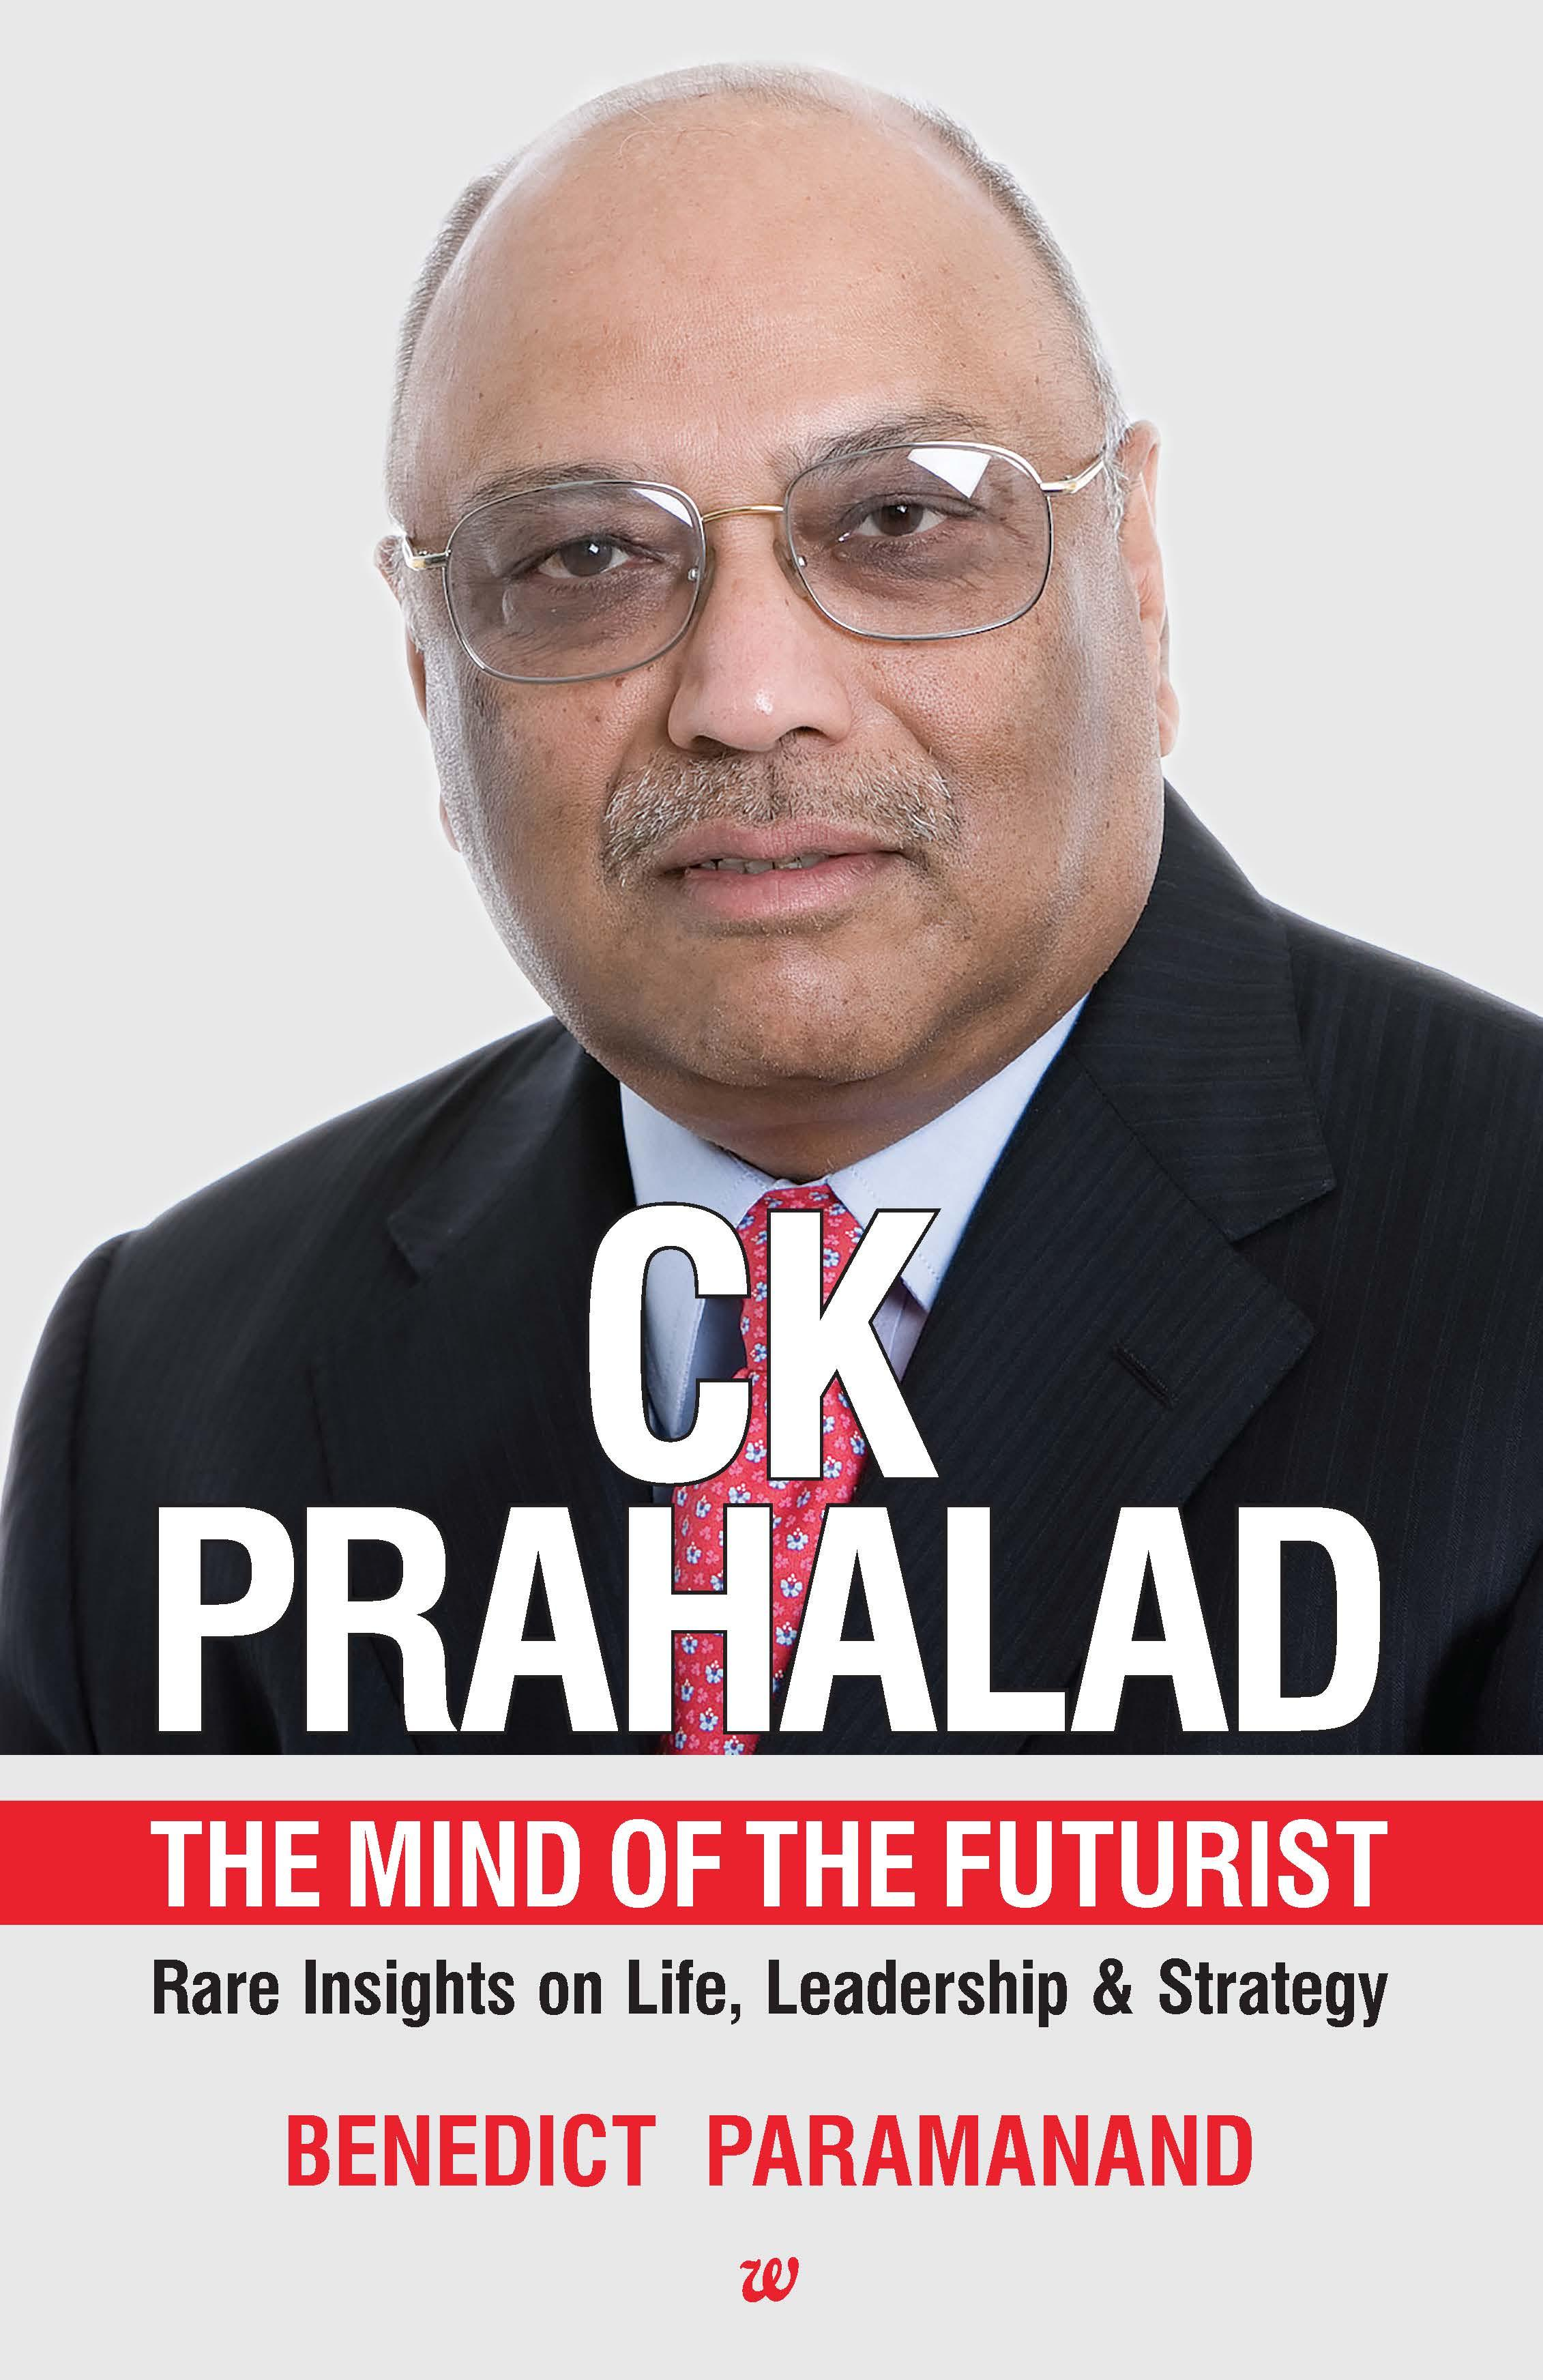 C K Prahalad The Mind of the Futurist